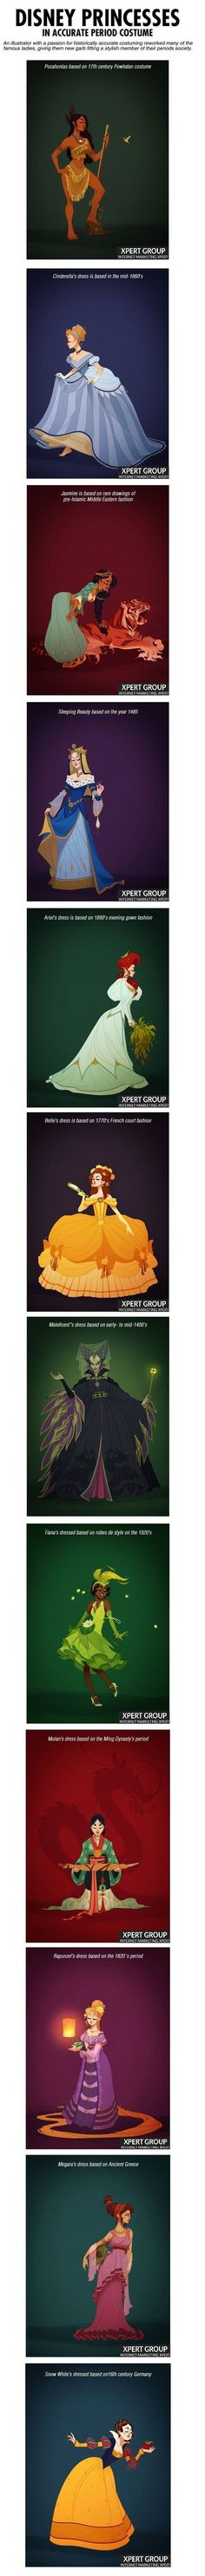 Disney Princesses in accurate costume!